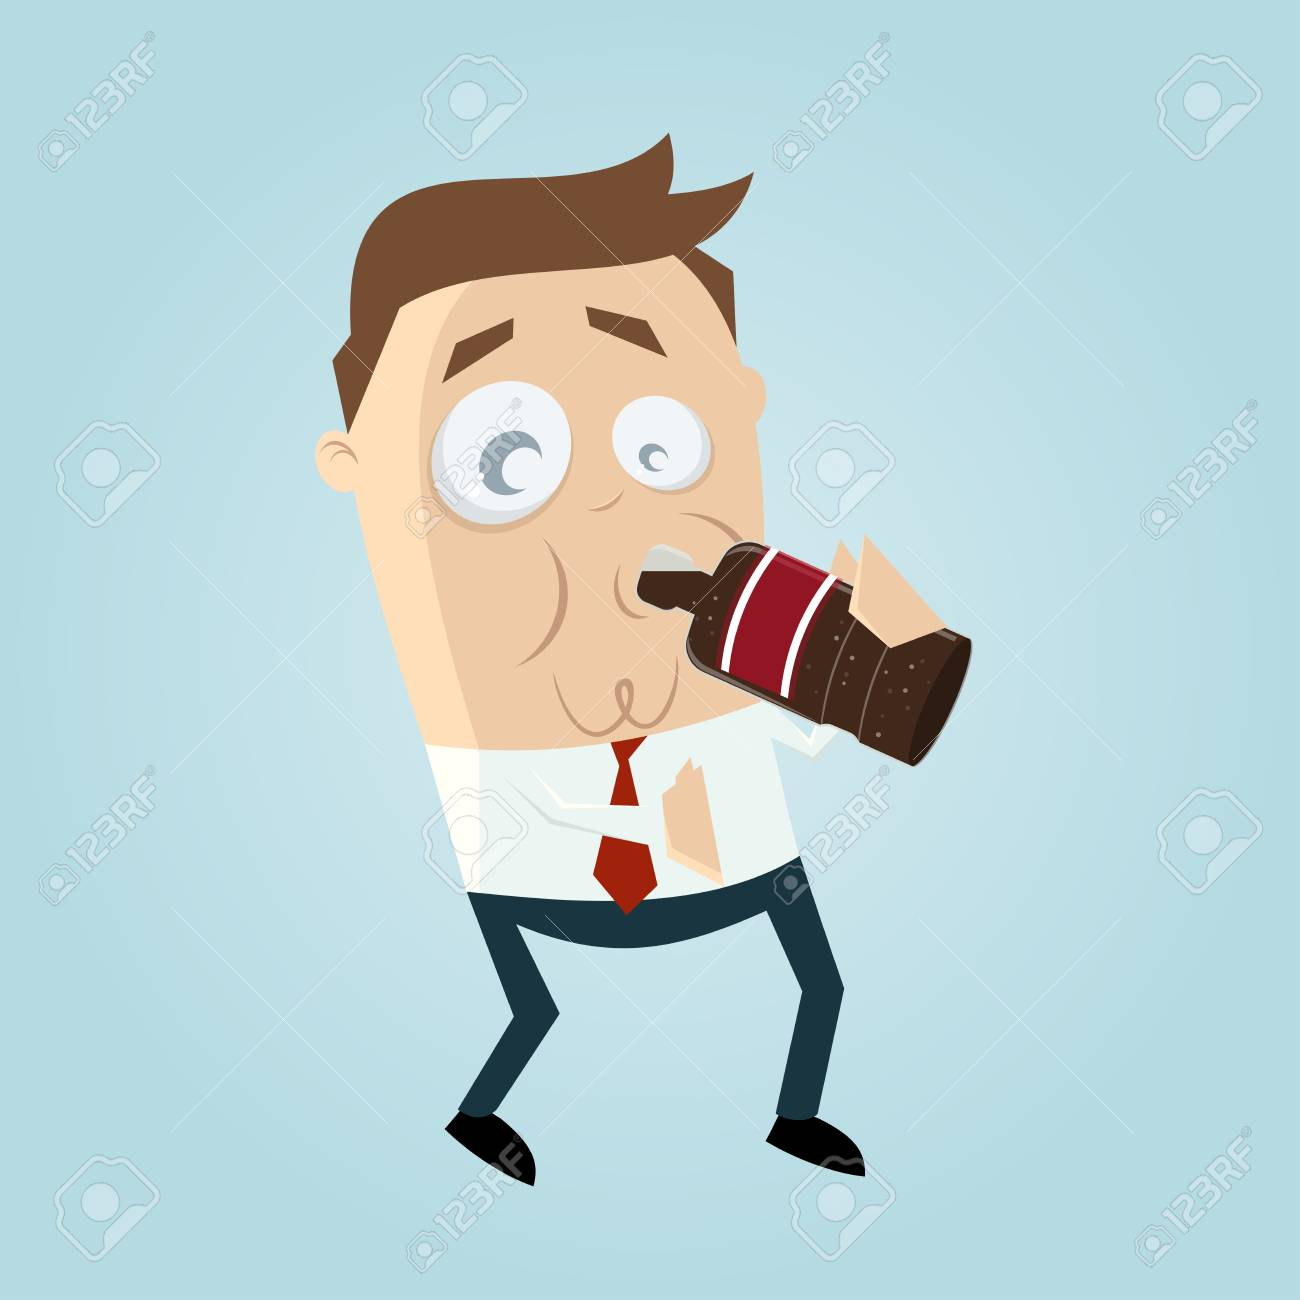 clipart of a man drinking cola.